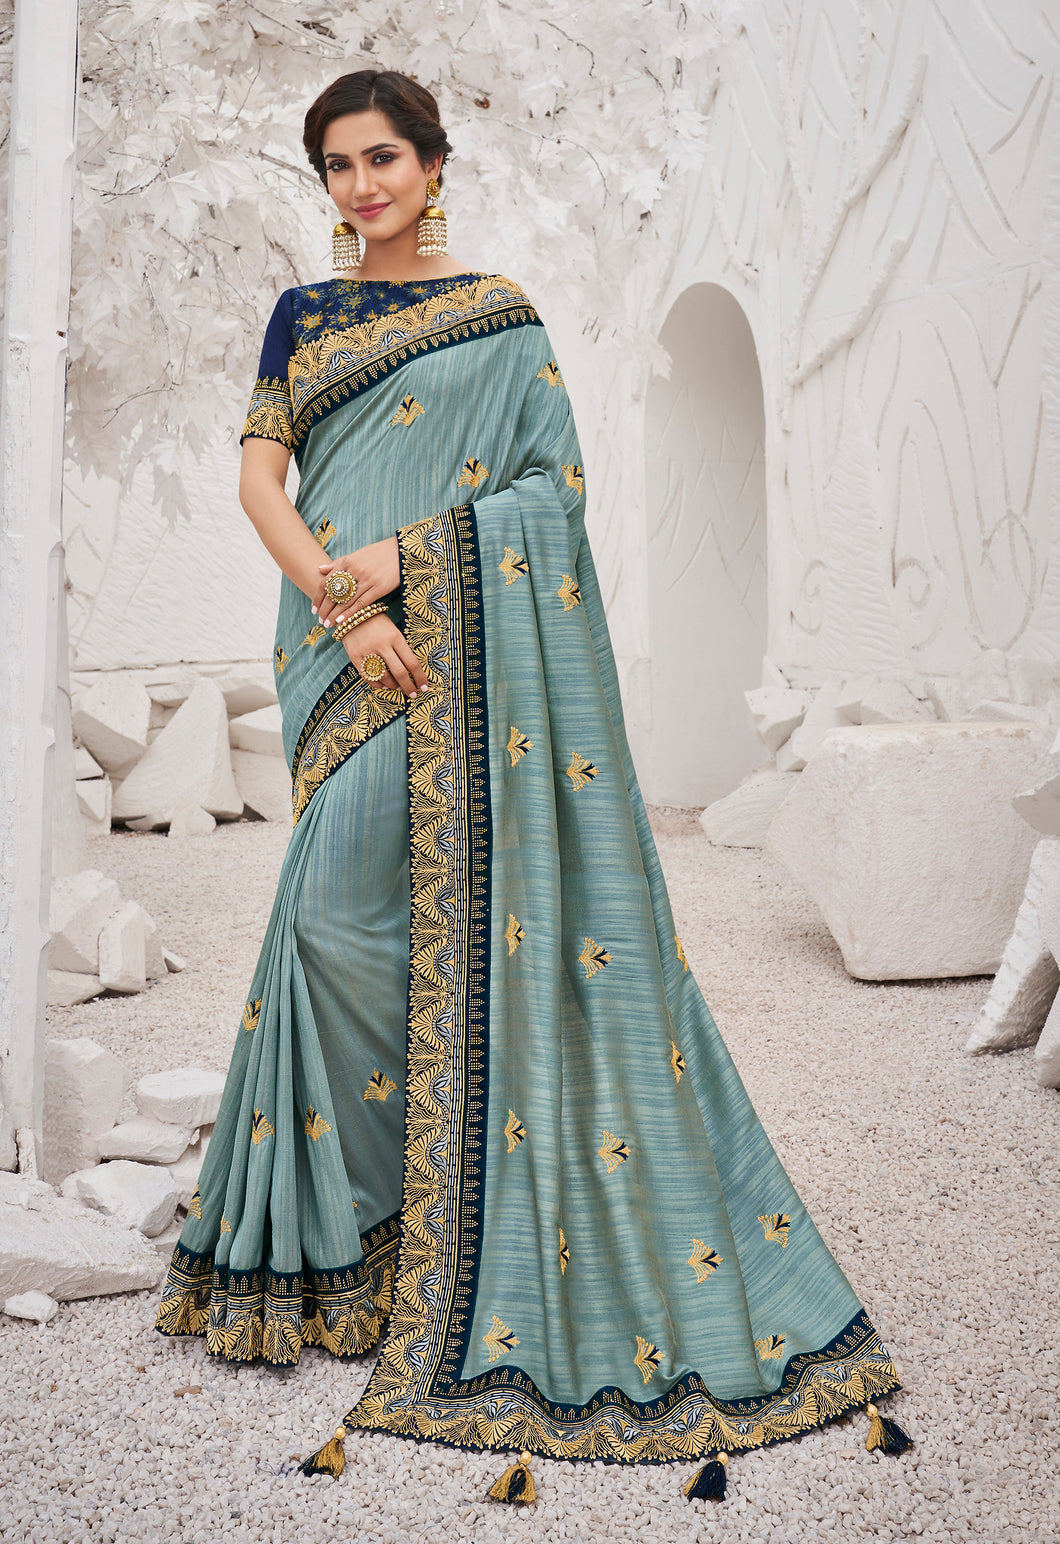 Sky Blue Satin Georgette Heavy Thread Embroidered lace work Saree with Embroidered Blouse